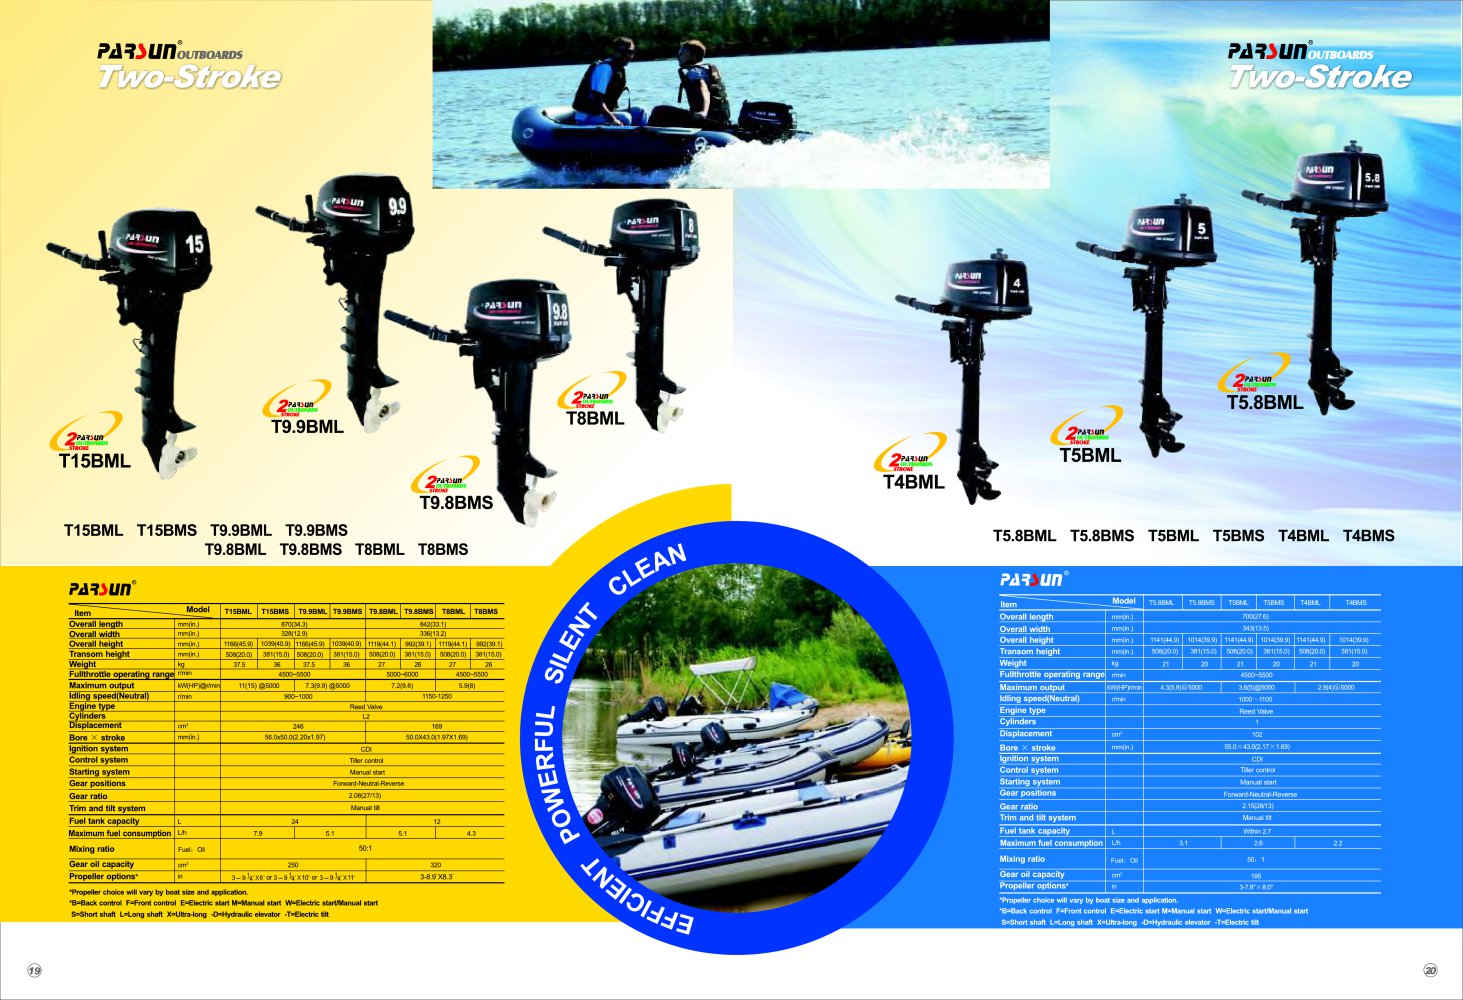 PARSUN 4-stroke outboard motor 2.6-6hp - 1 / 2 Pages